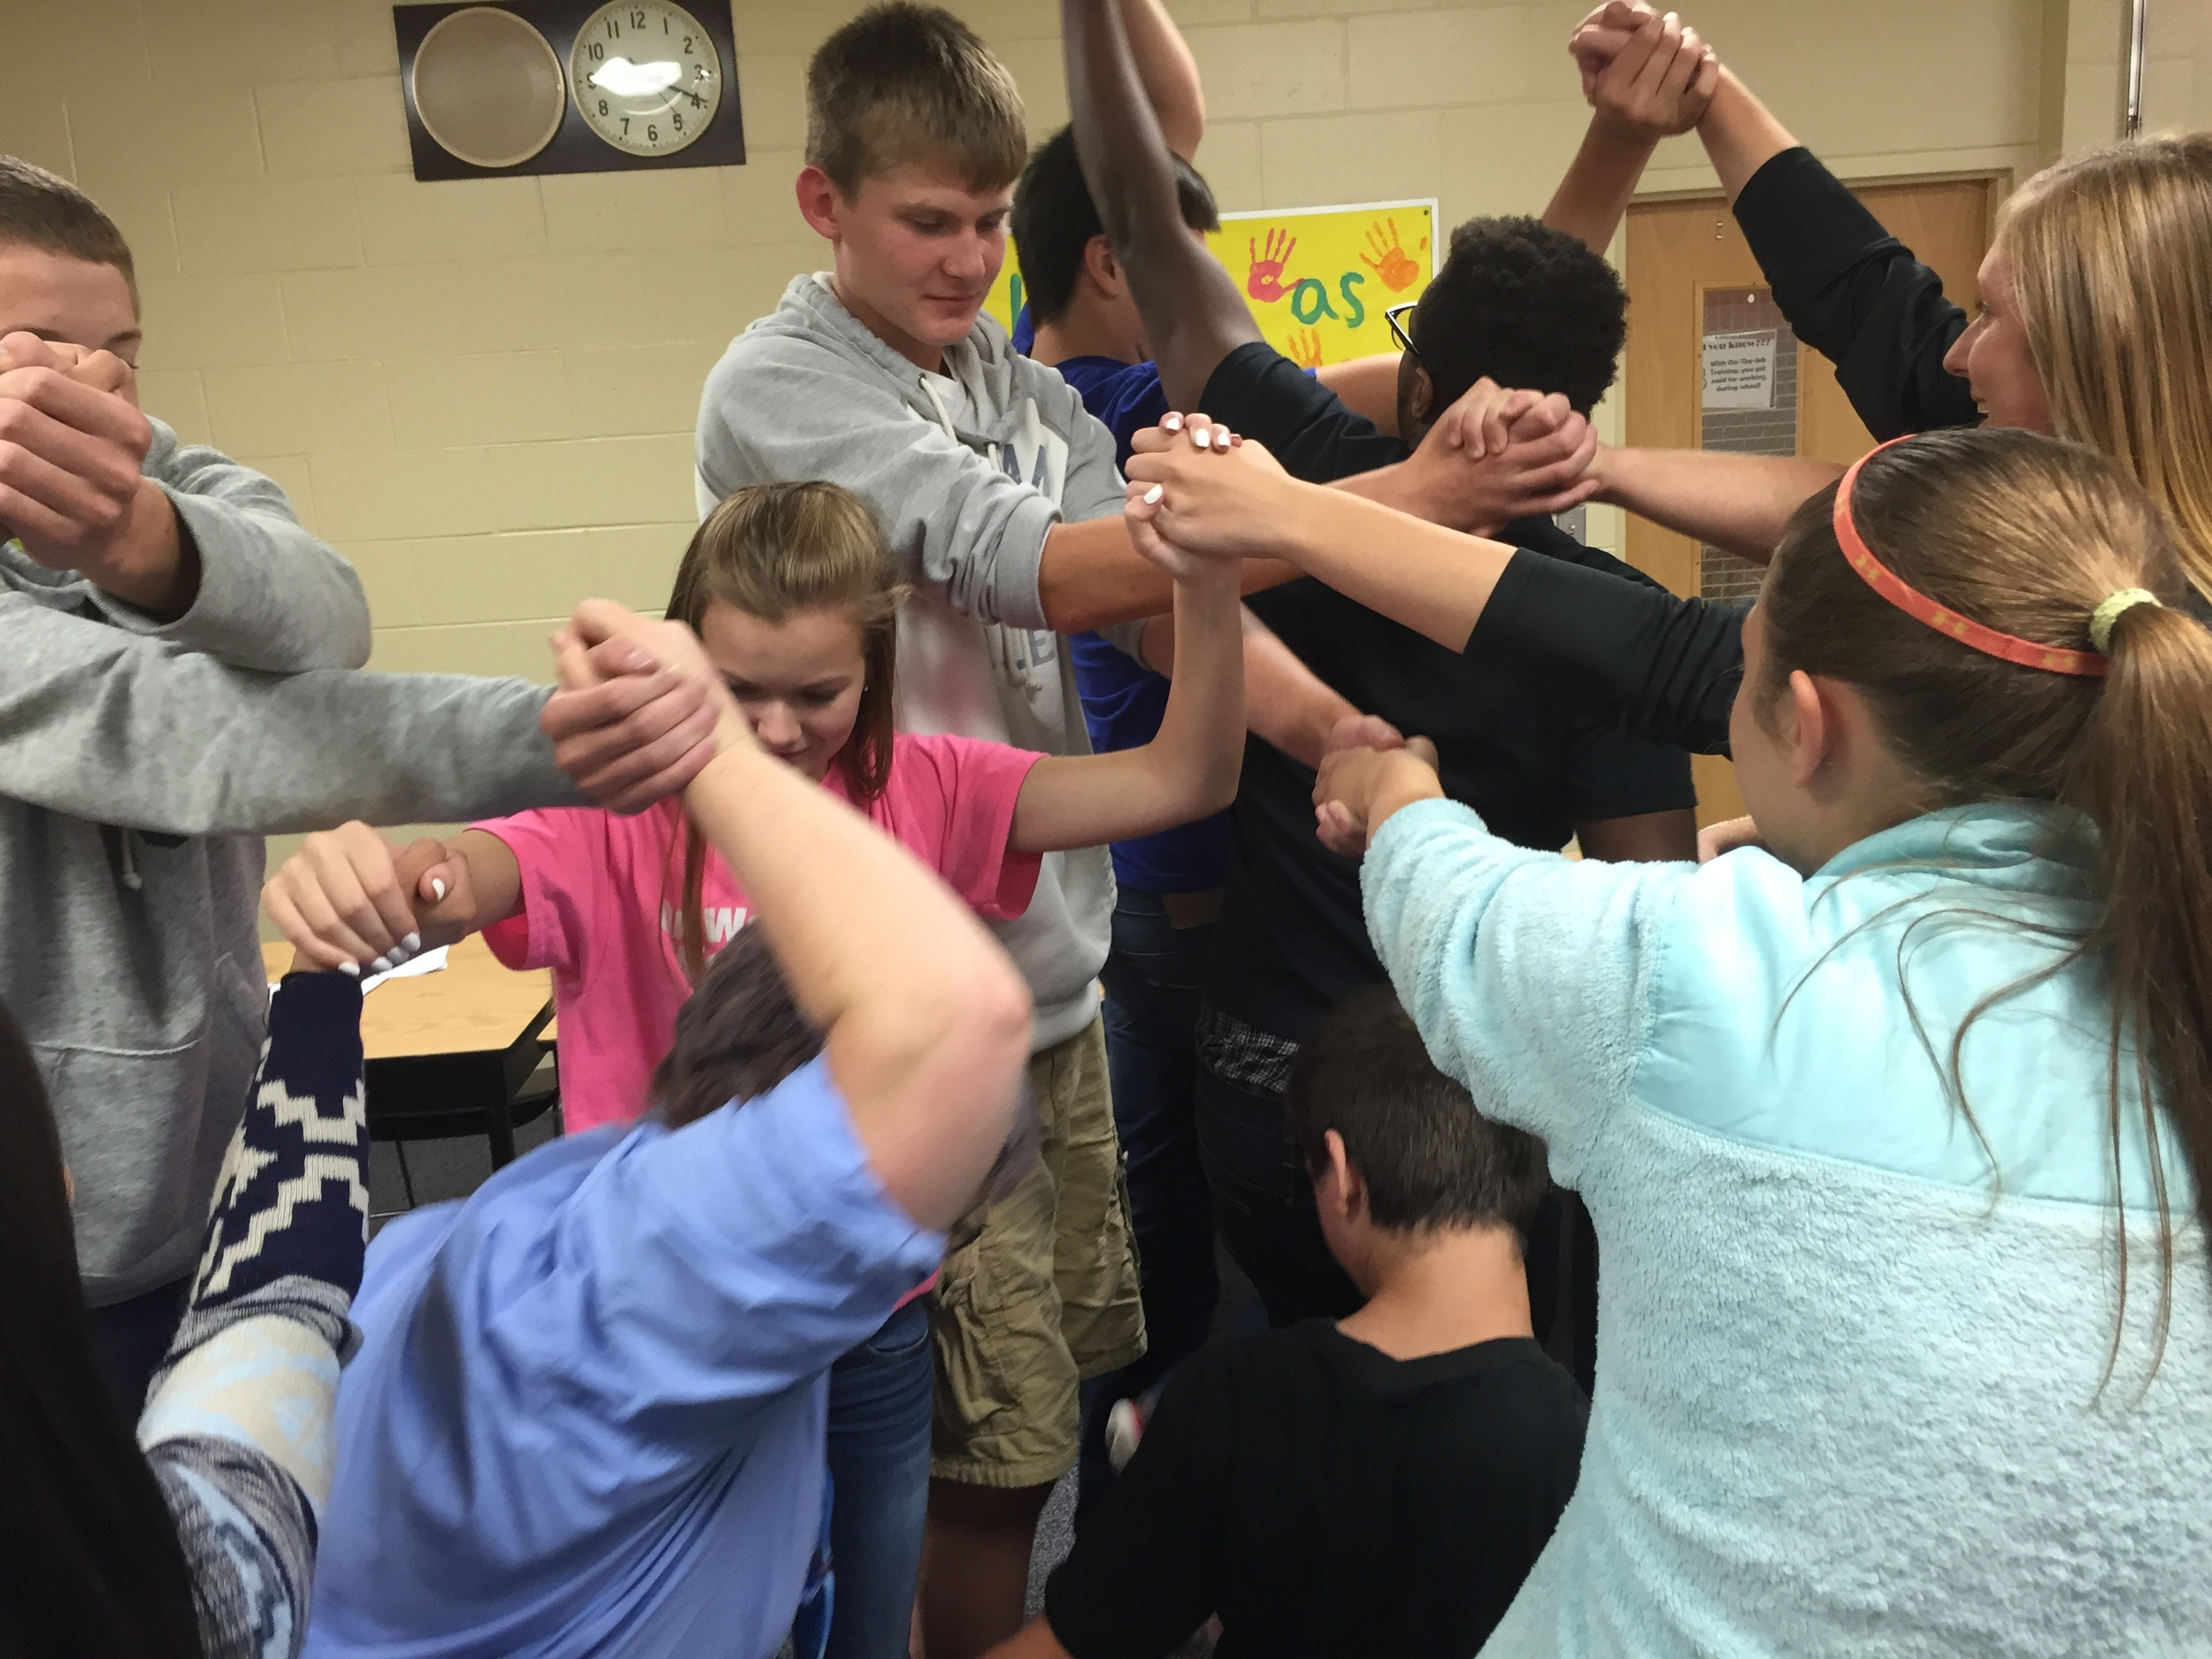 YACers try to untangle themselves from the Human Knot while learning how to work together to accomplish a goal.